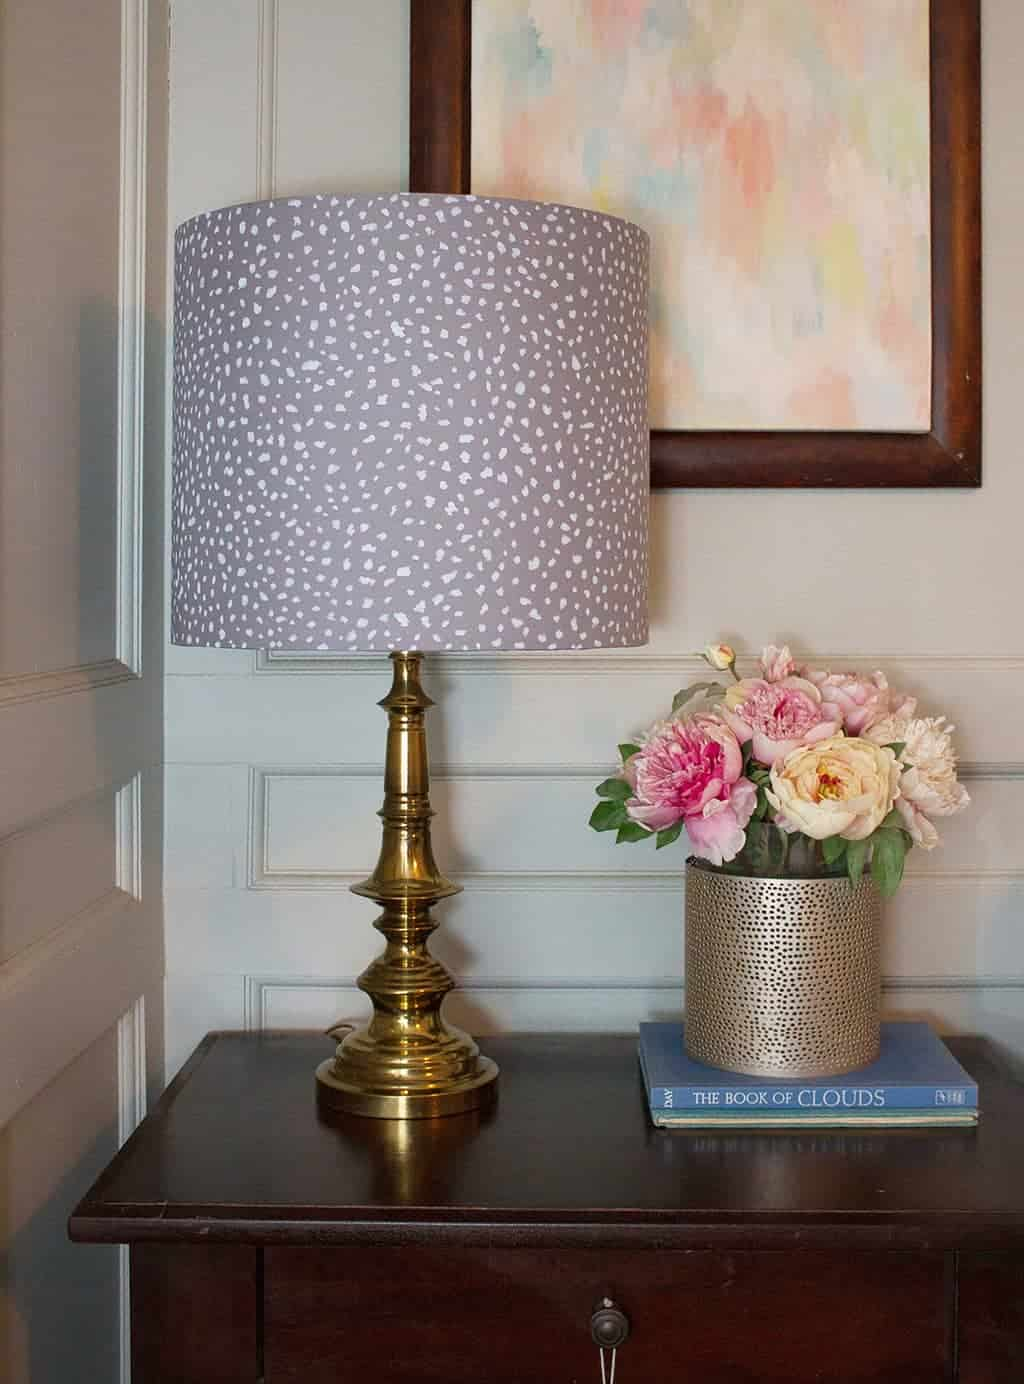 Make your own diy lamp shade from an i like that lamp kit audrey of oh so lovely blog shows you just how easy it is to make your aloadofball Gallery